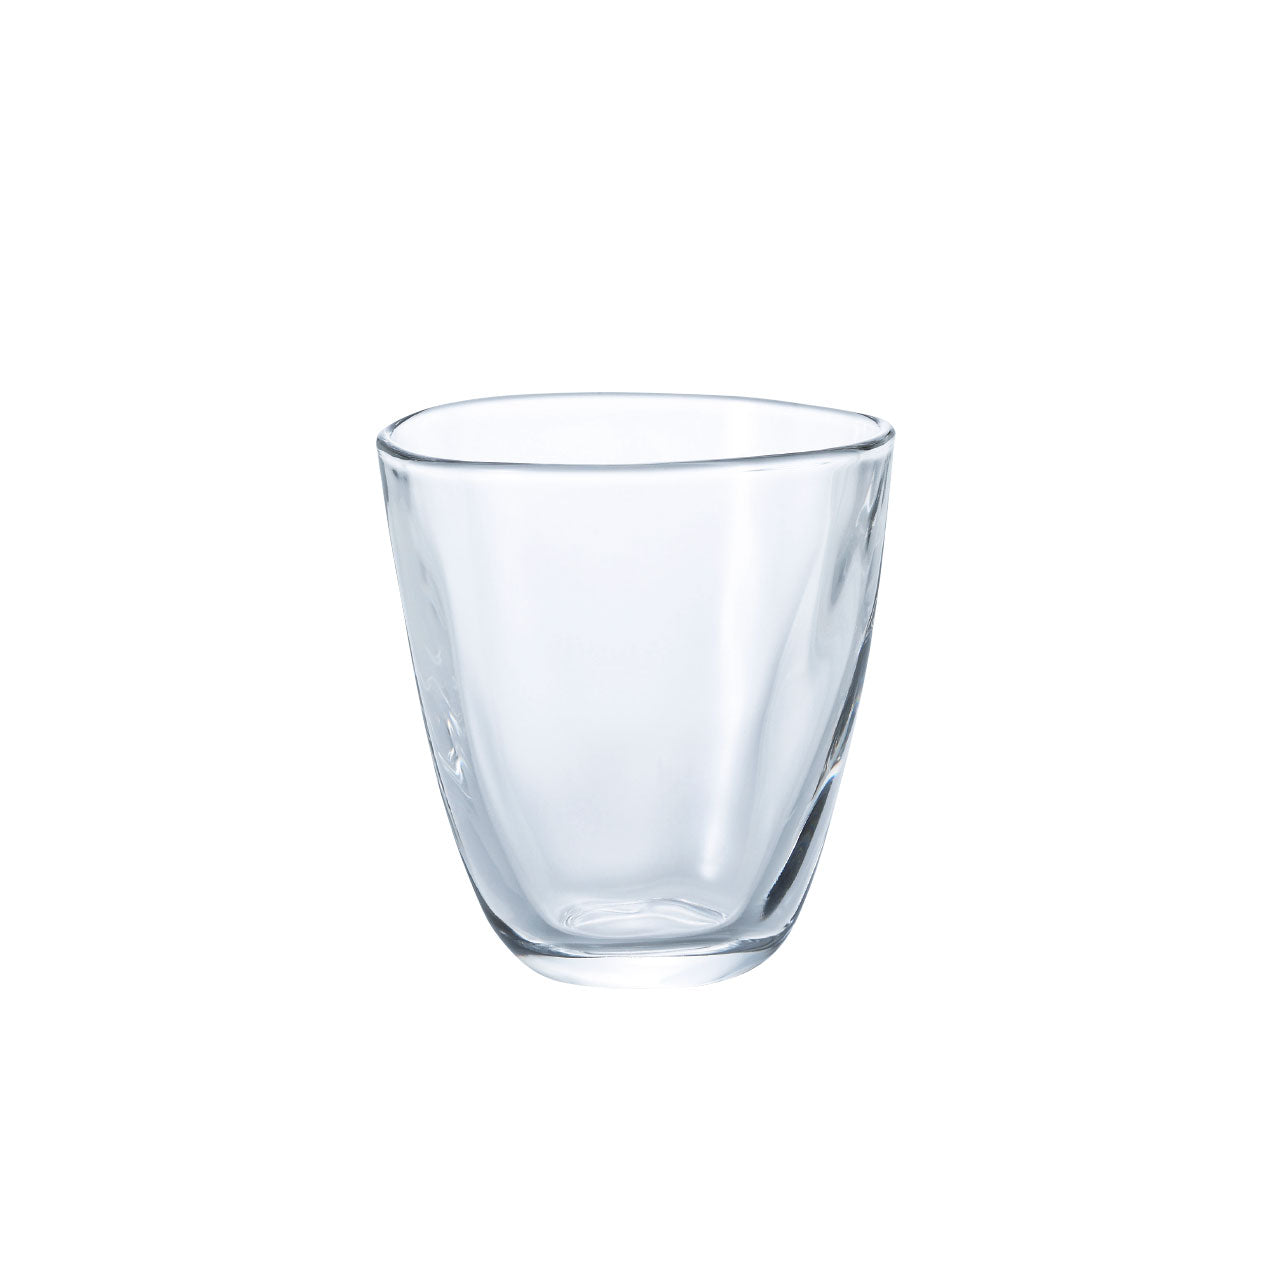 Organic Shaped Glass Tumbler 8 fl oz